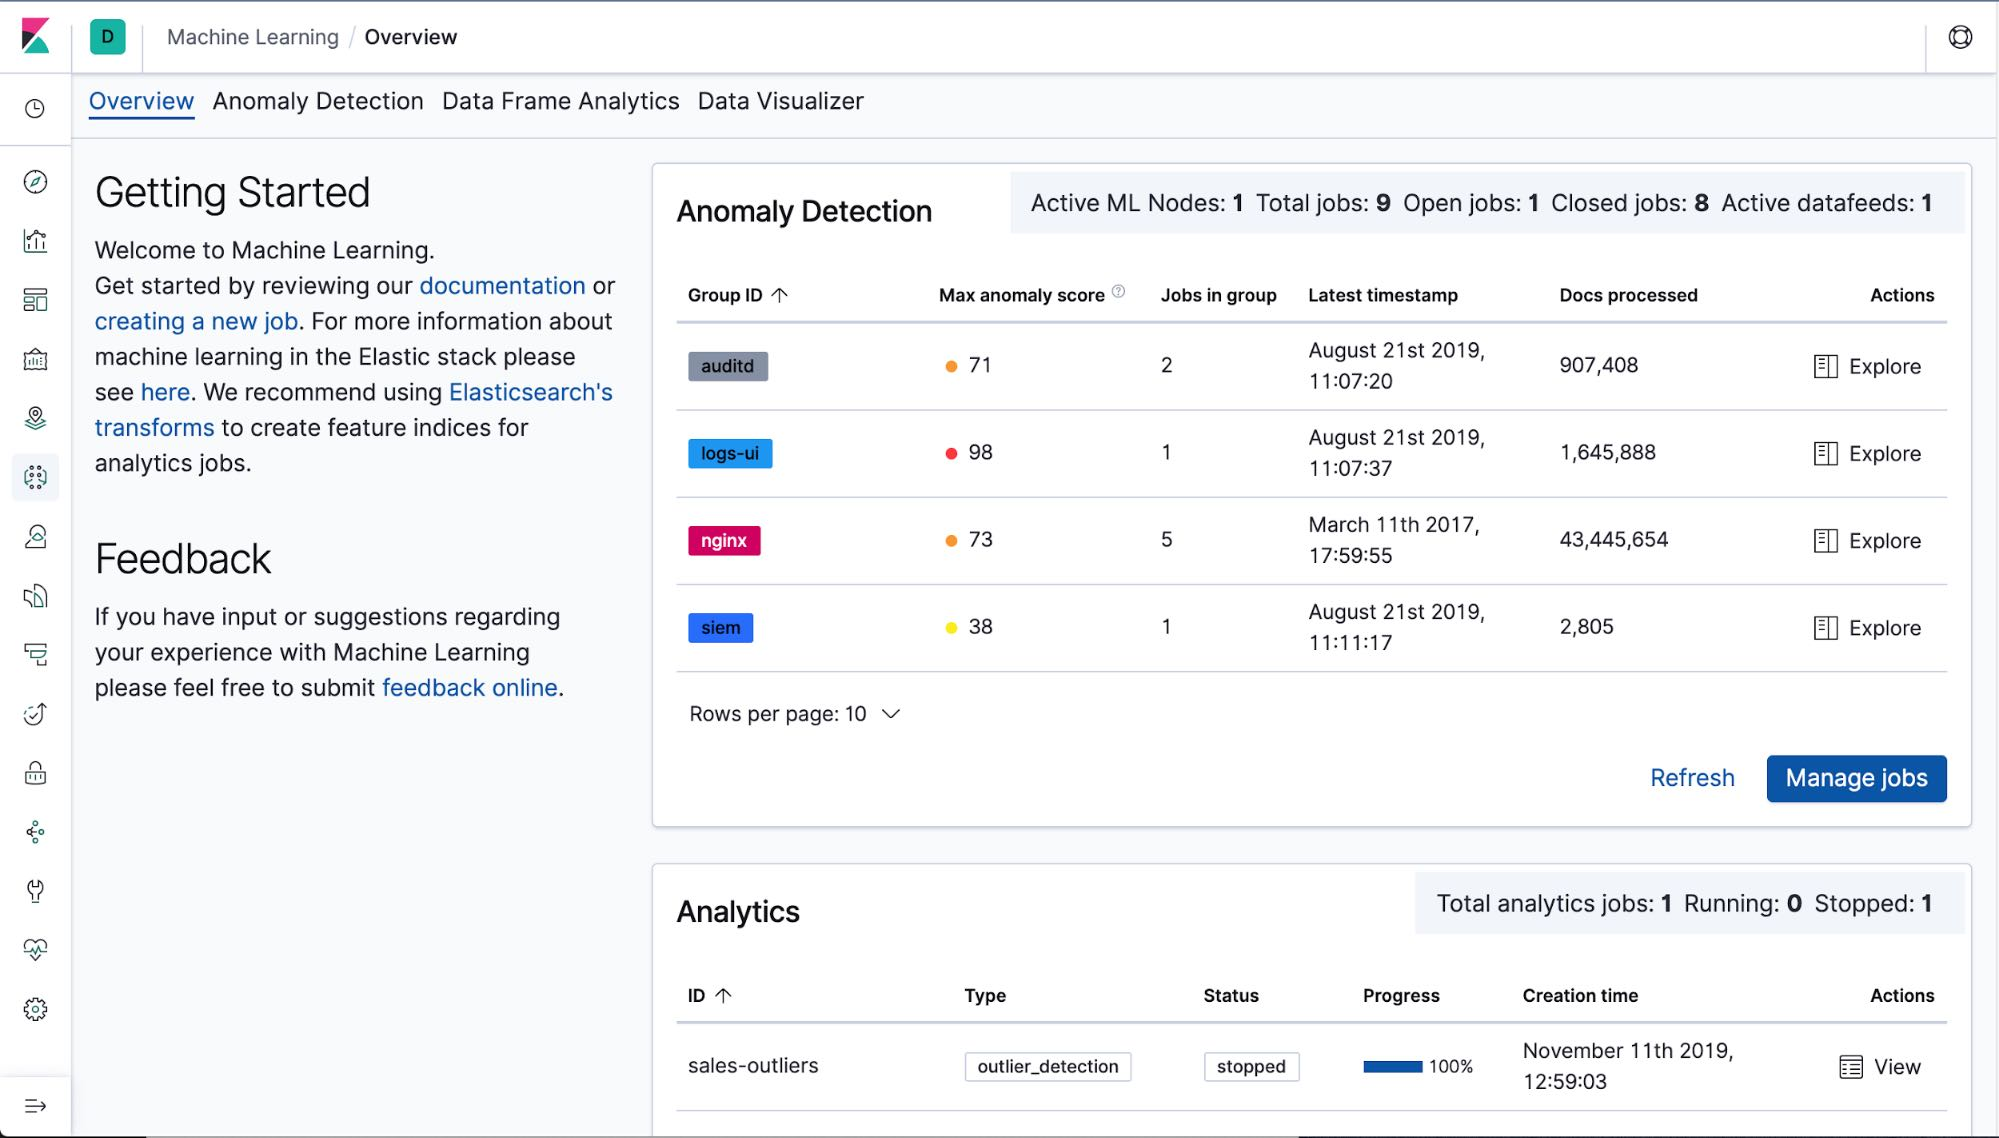 In Kibana 7-5 the new new Machine Learning Overview page helps you get familiar with all the Elastic machine learning capabilities in one place